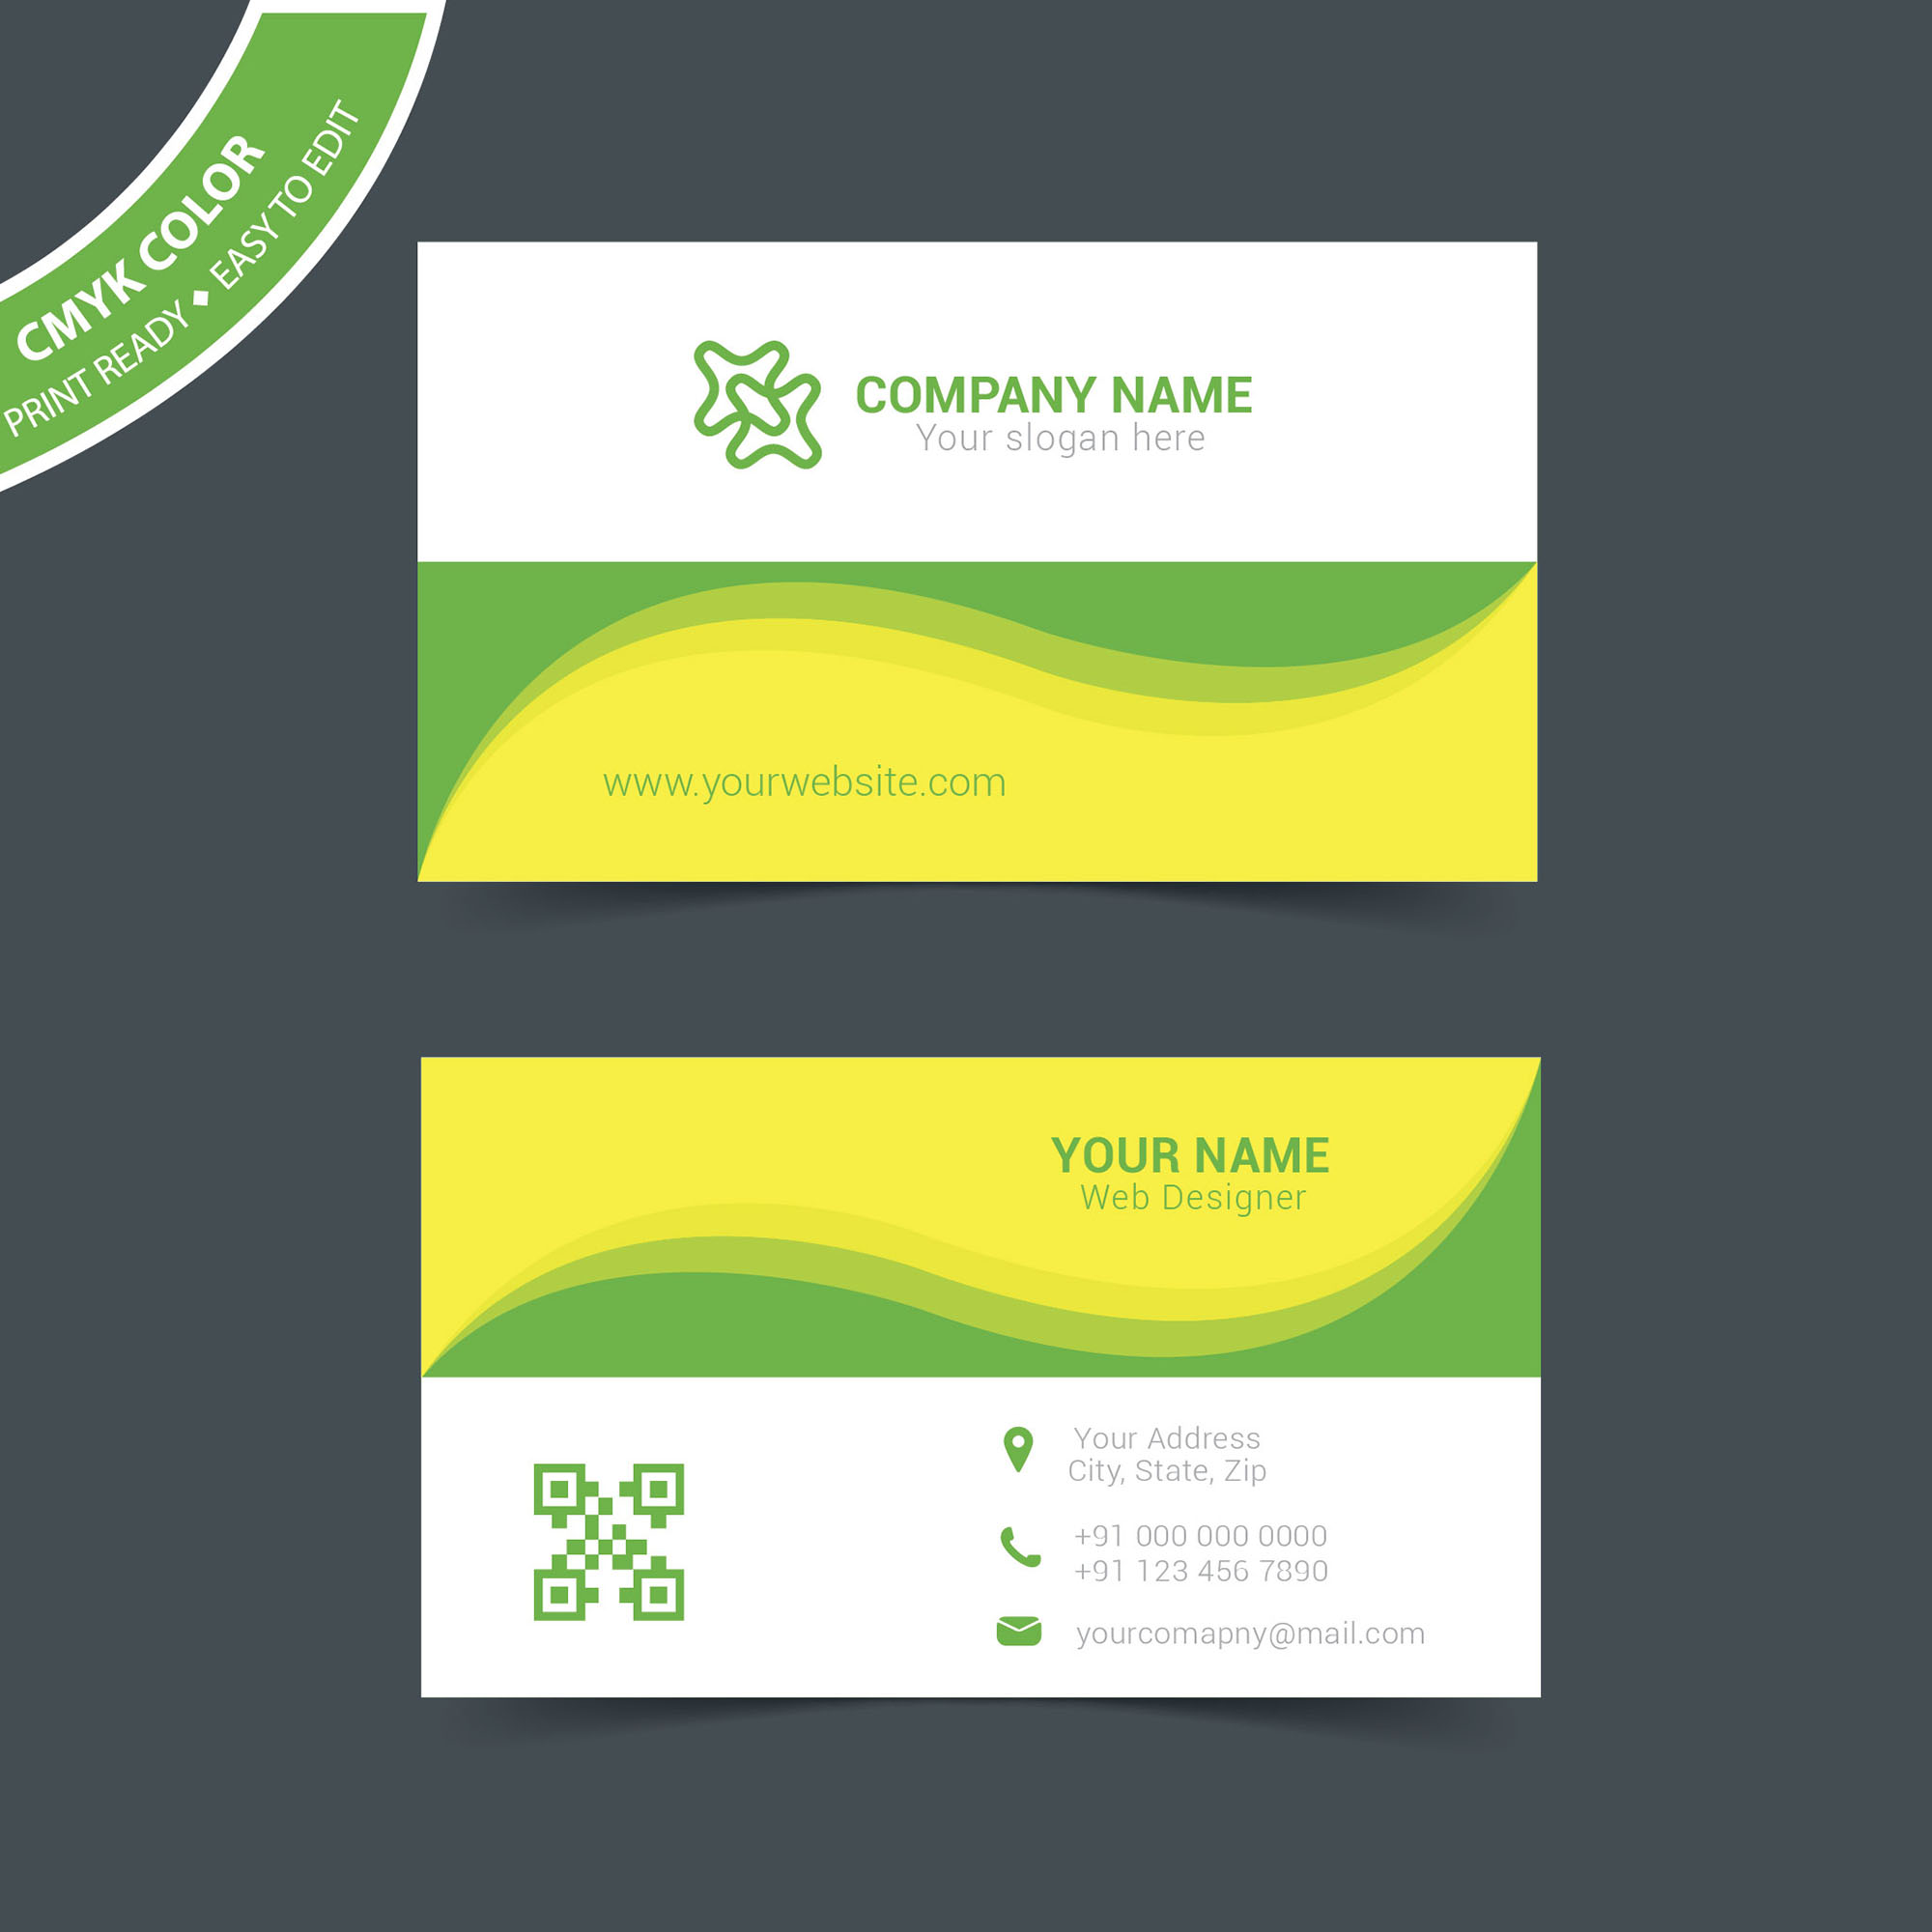 Corporate business card vector free download wisxi business card business cards business card design business card template design templates wajeb Gallery